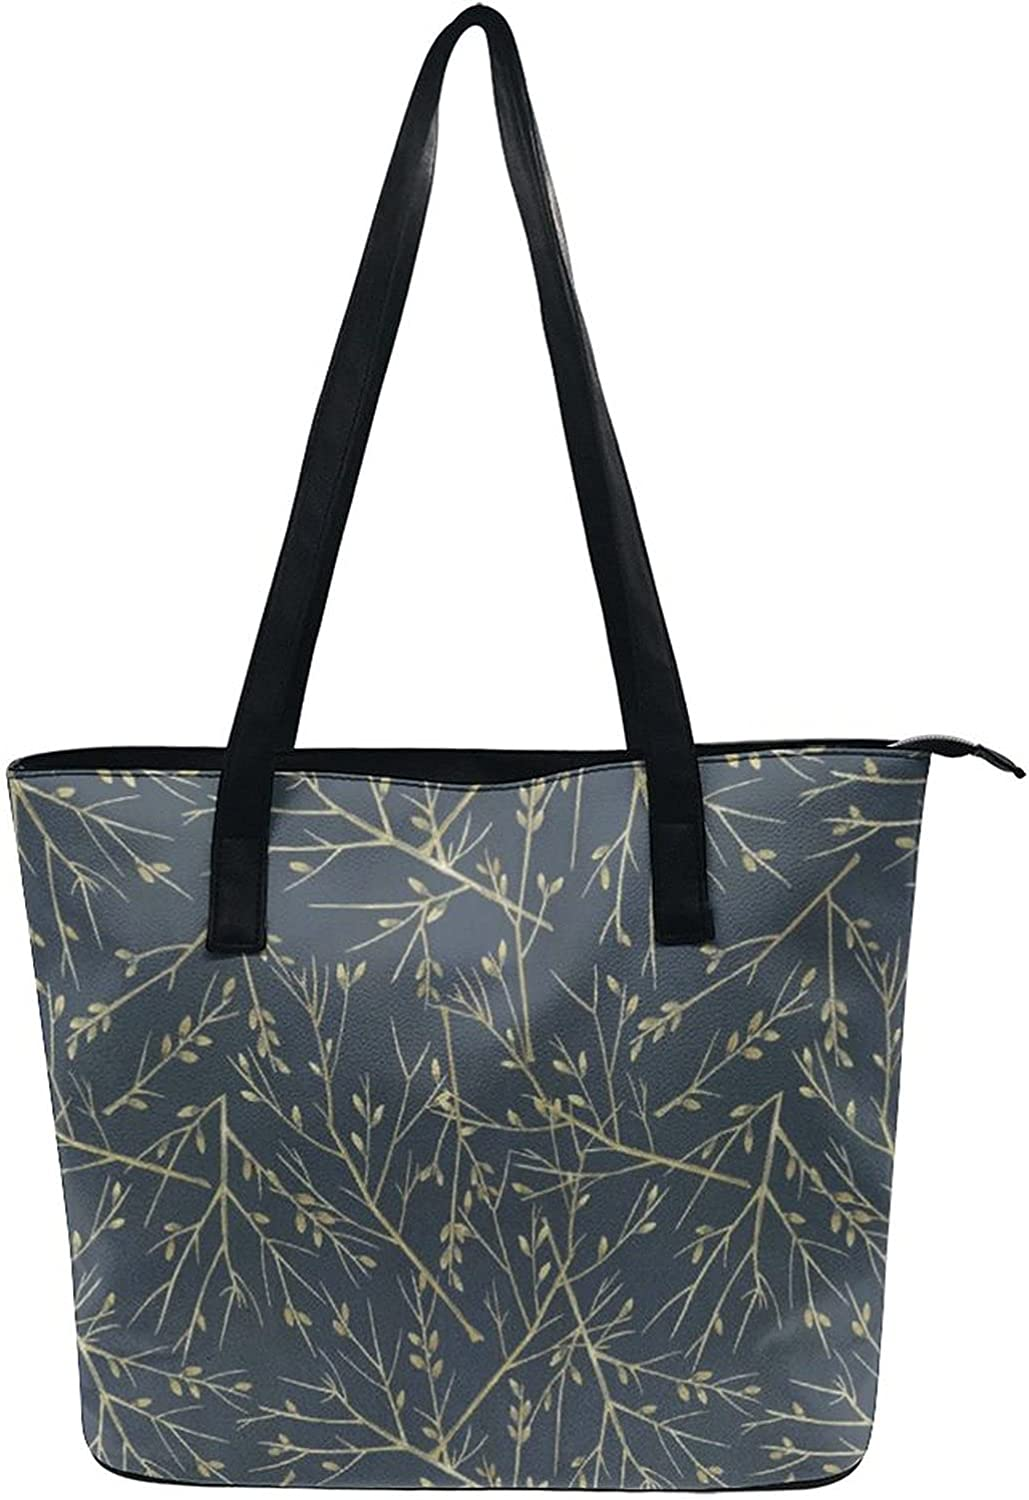 Satchel Shoulder Bags Beach Tote Bag For Women Lady Classic Shopping Bags